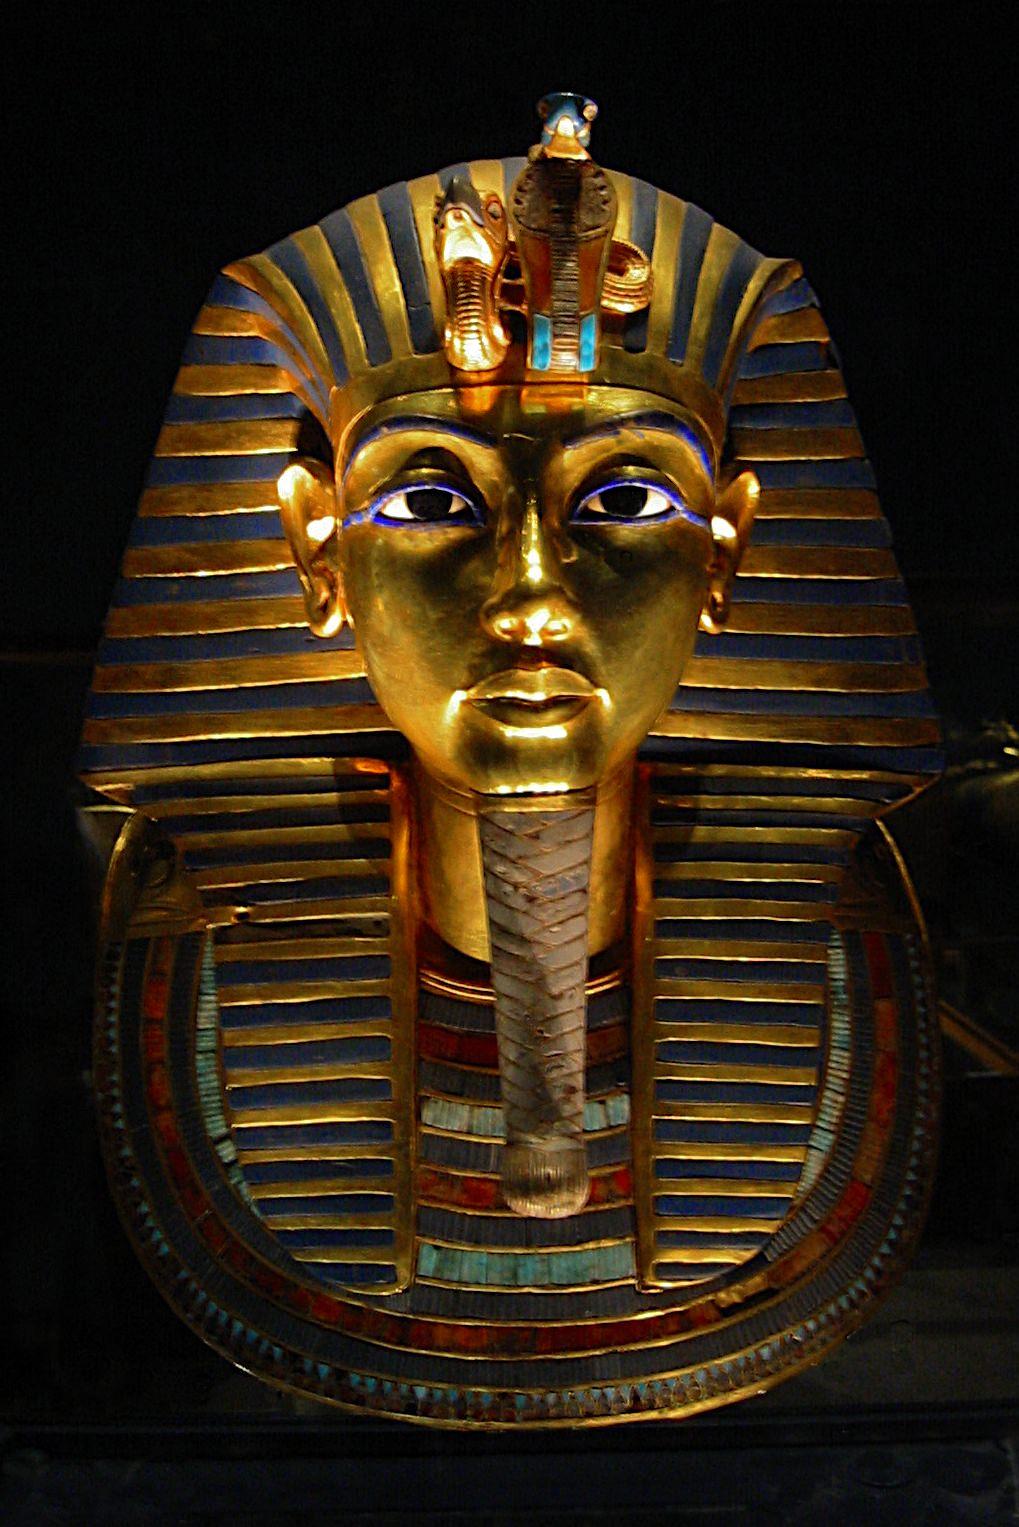 tutankhamen death The gold burial death mask of tutankhamun honored the young pharaoh after his untimely death credit: dreamstime though the famed egyptian pharaoh king tutankhamun died more than 3,300 years ago.